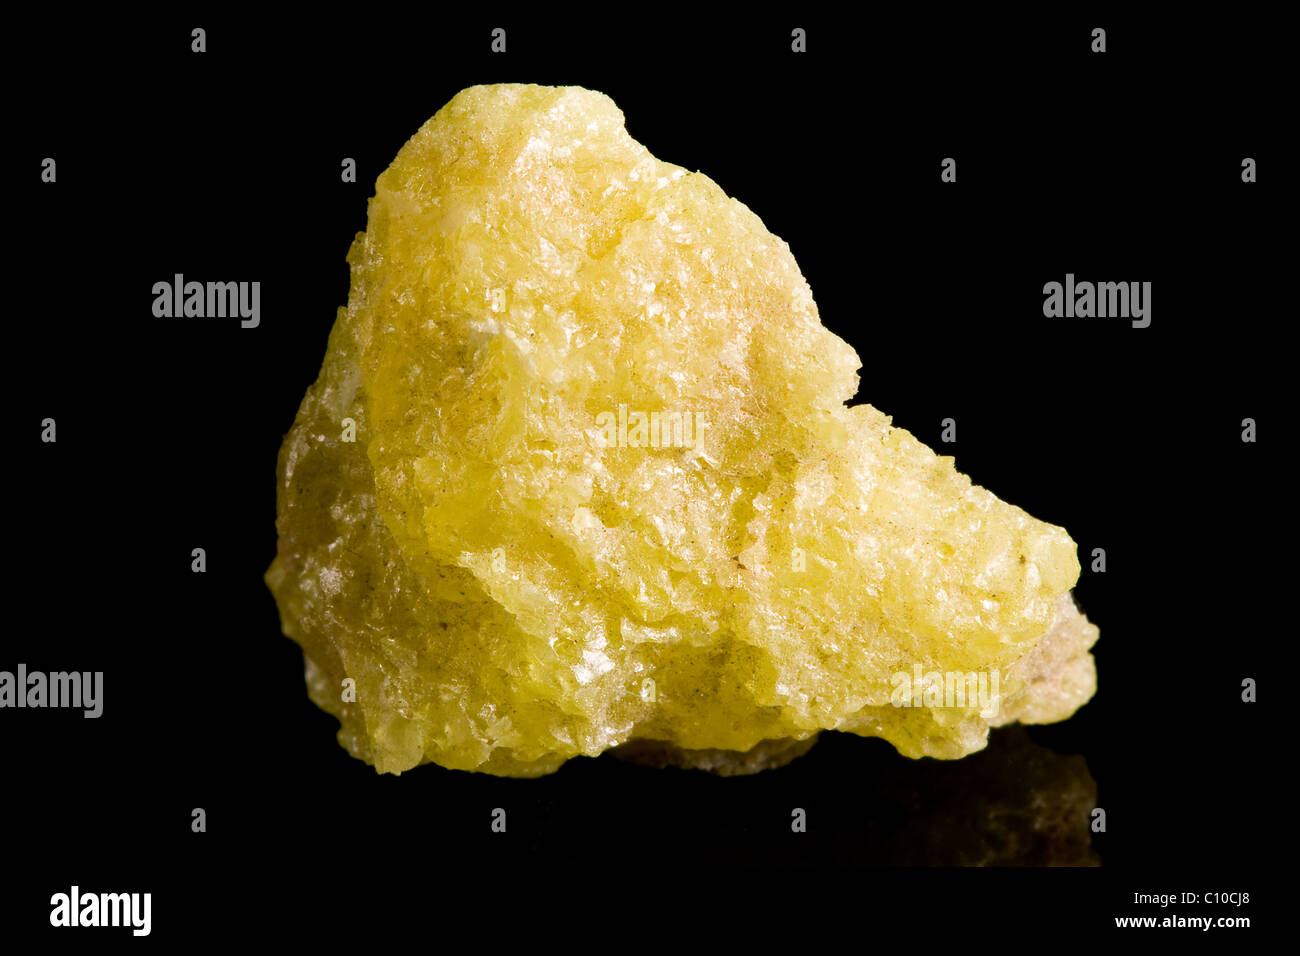 Sulfur crystals - Stock Image